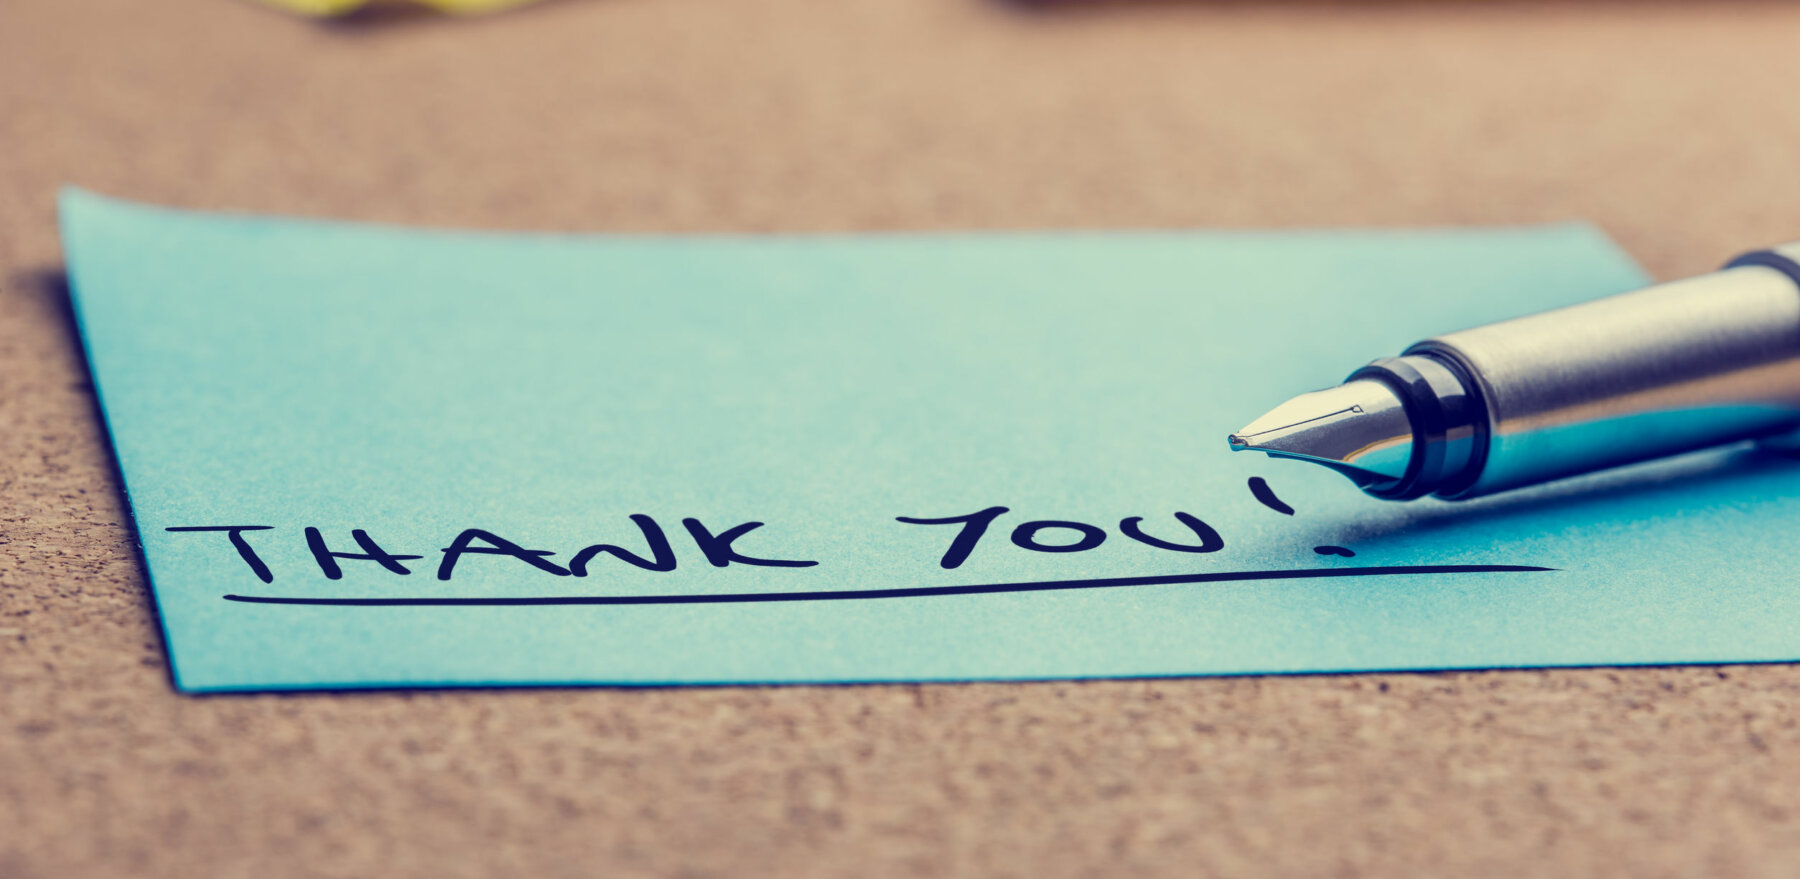 Handwritten Thank You note written on a blue sticky note lying on a cork board with a fountain pen viewed low angle.